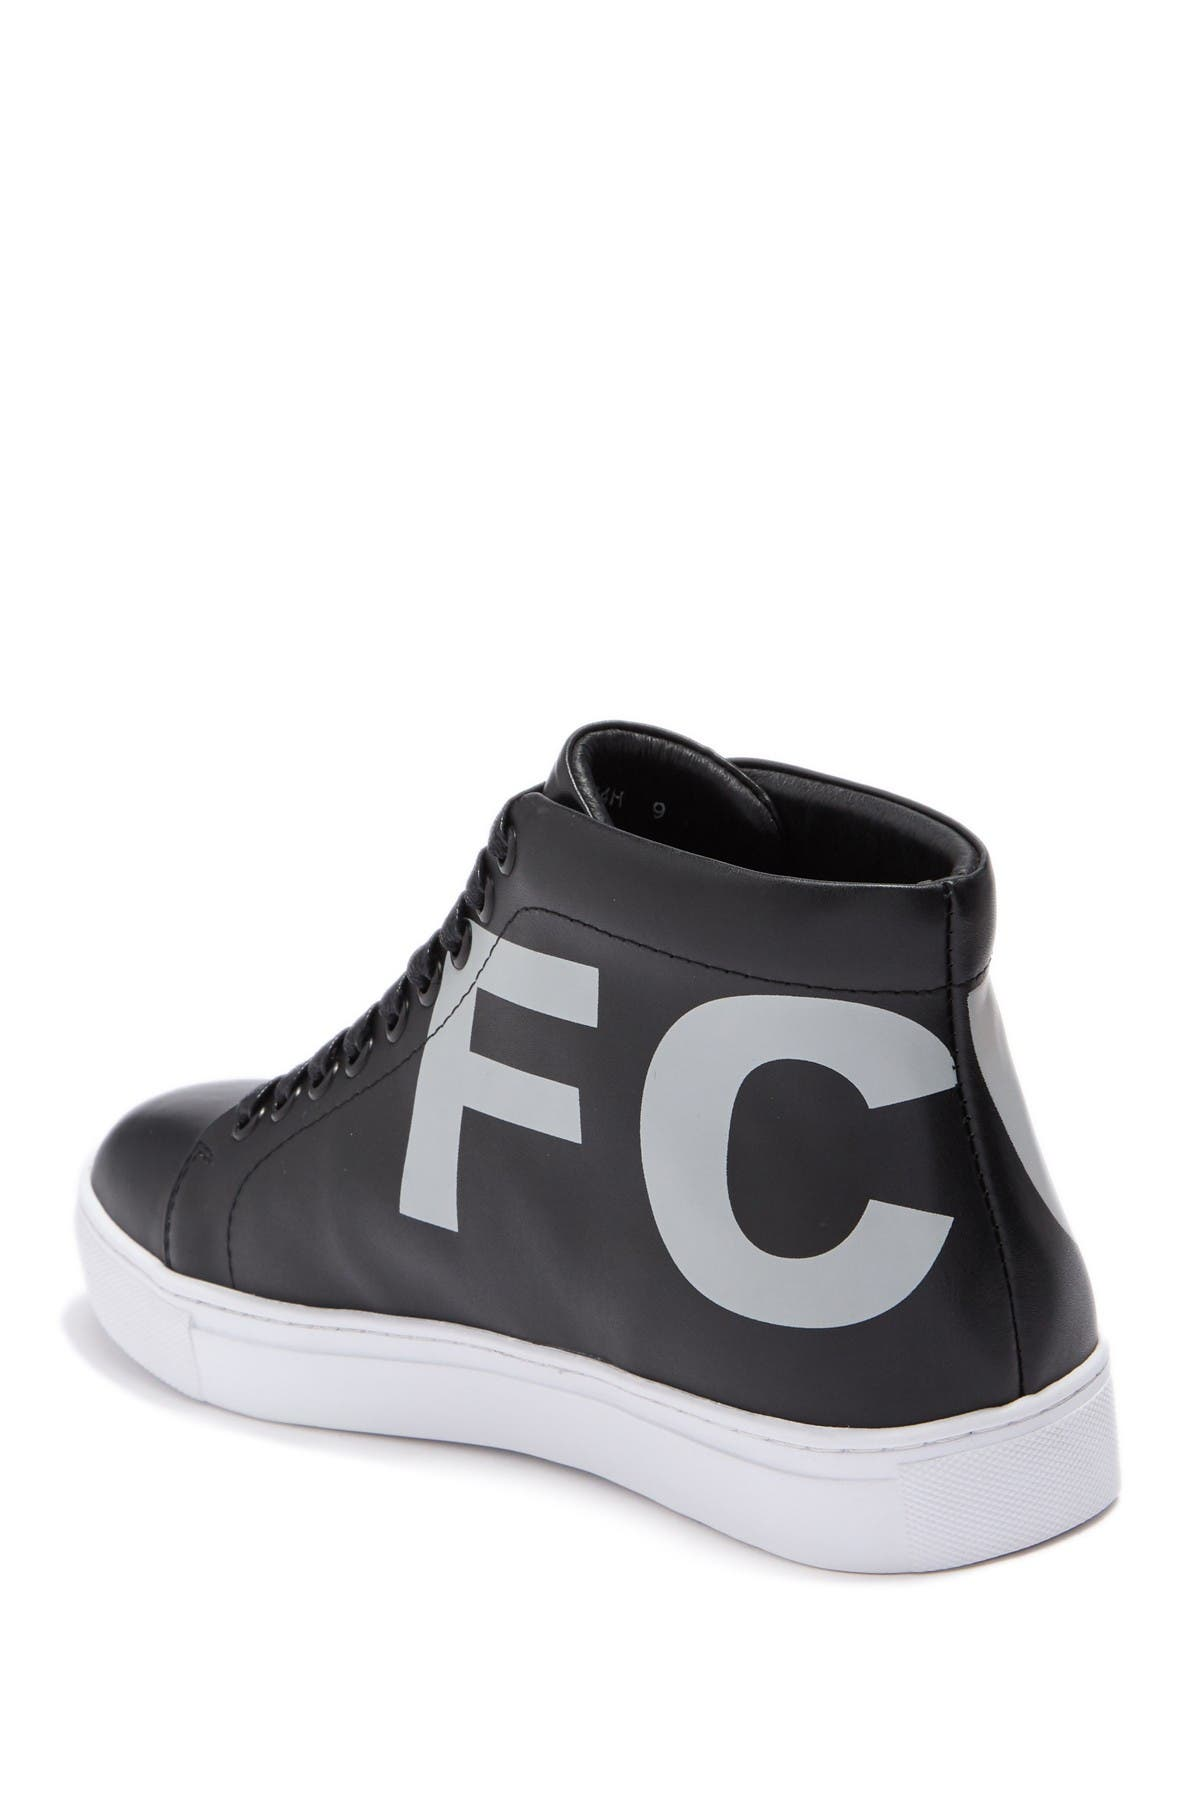 Image of French Connection Triomphe High Top Sneaker